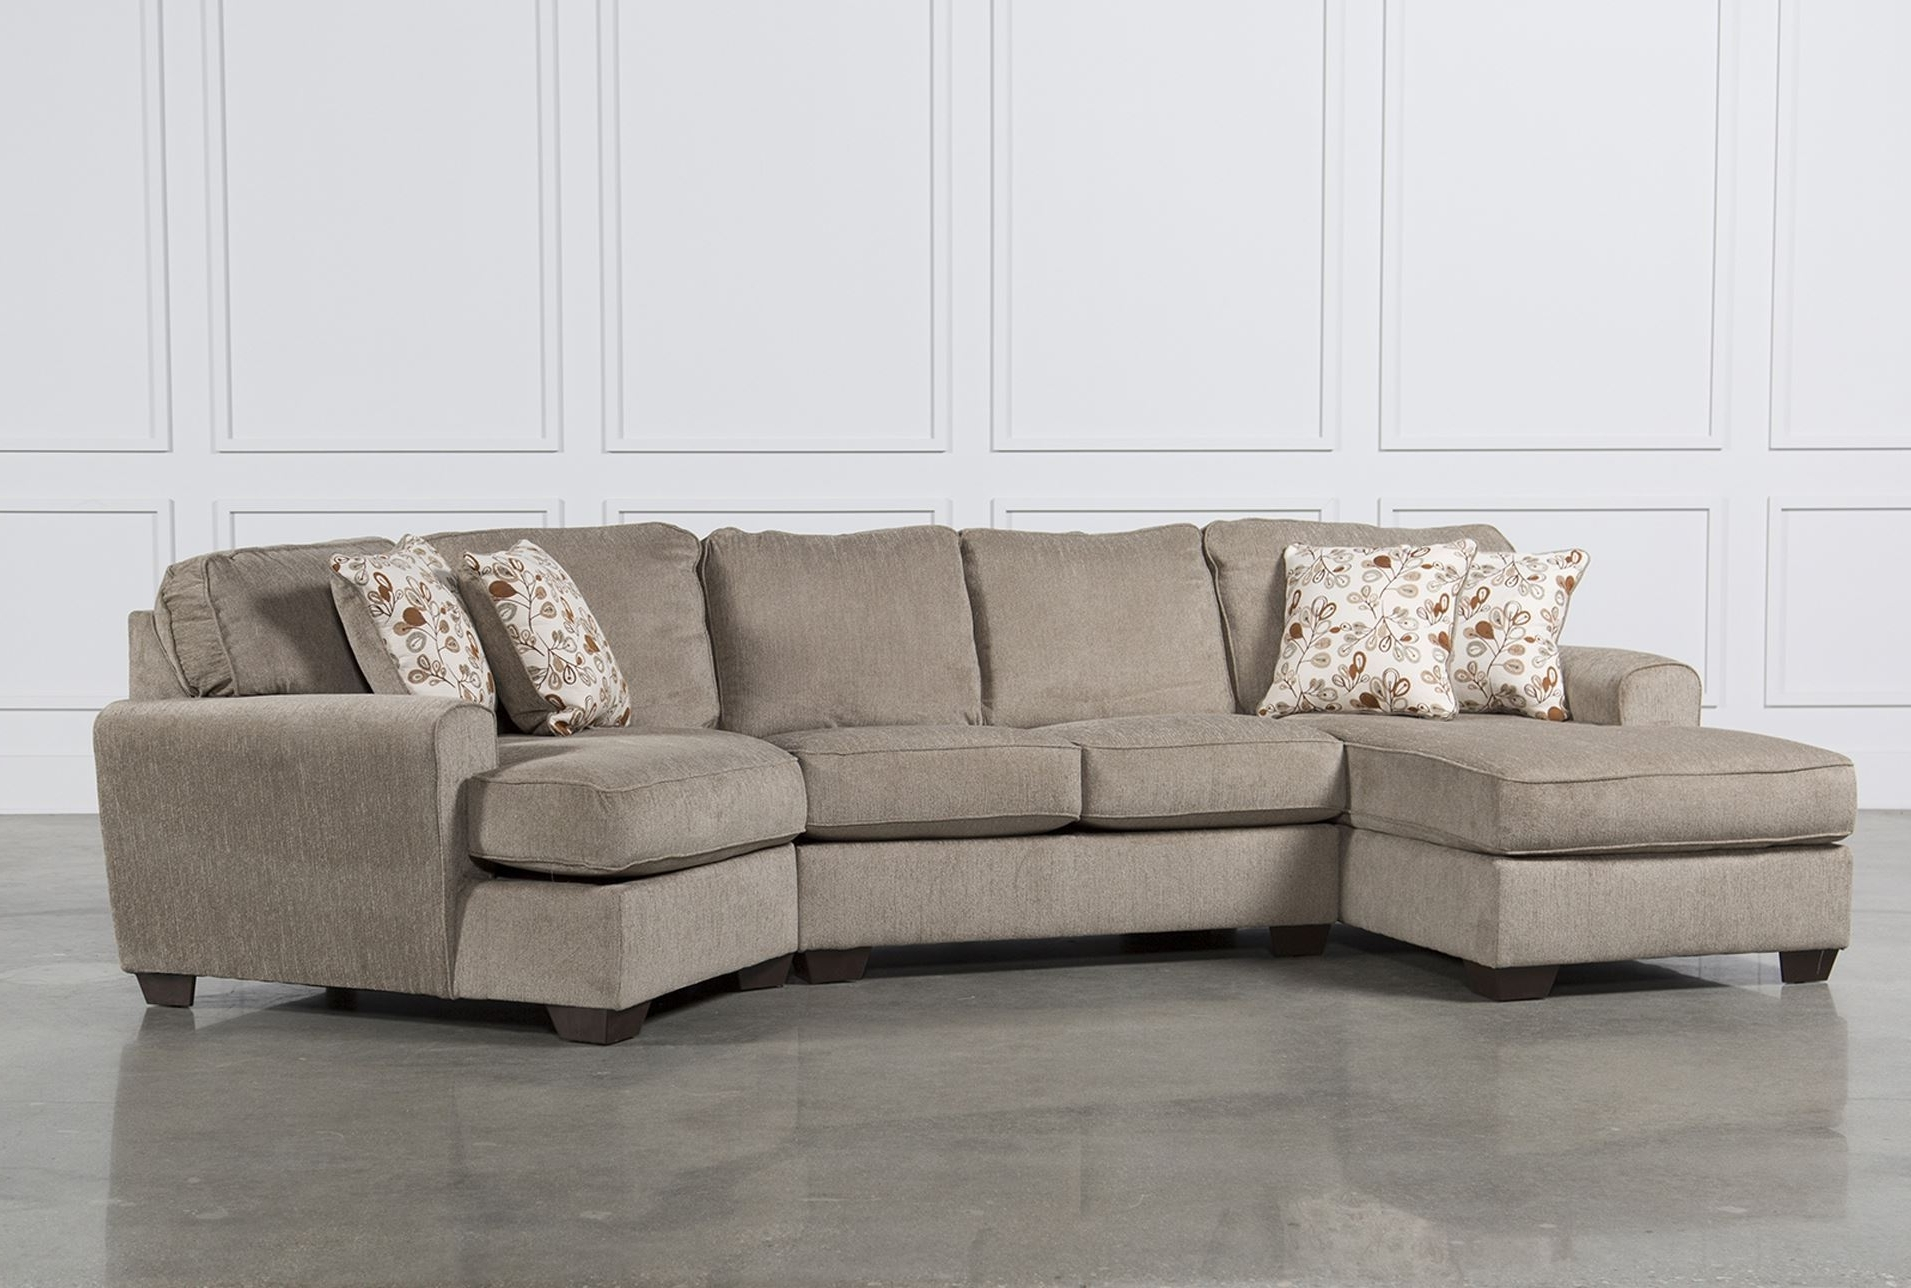 Furniture: Sectional Chaise Sofas Chaise Sectional Inside Latest Beige Sectionals With Chaise (View 9 of 15)